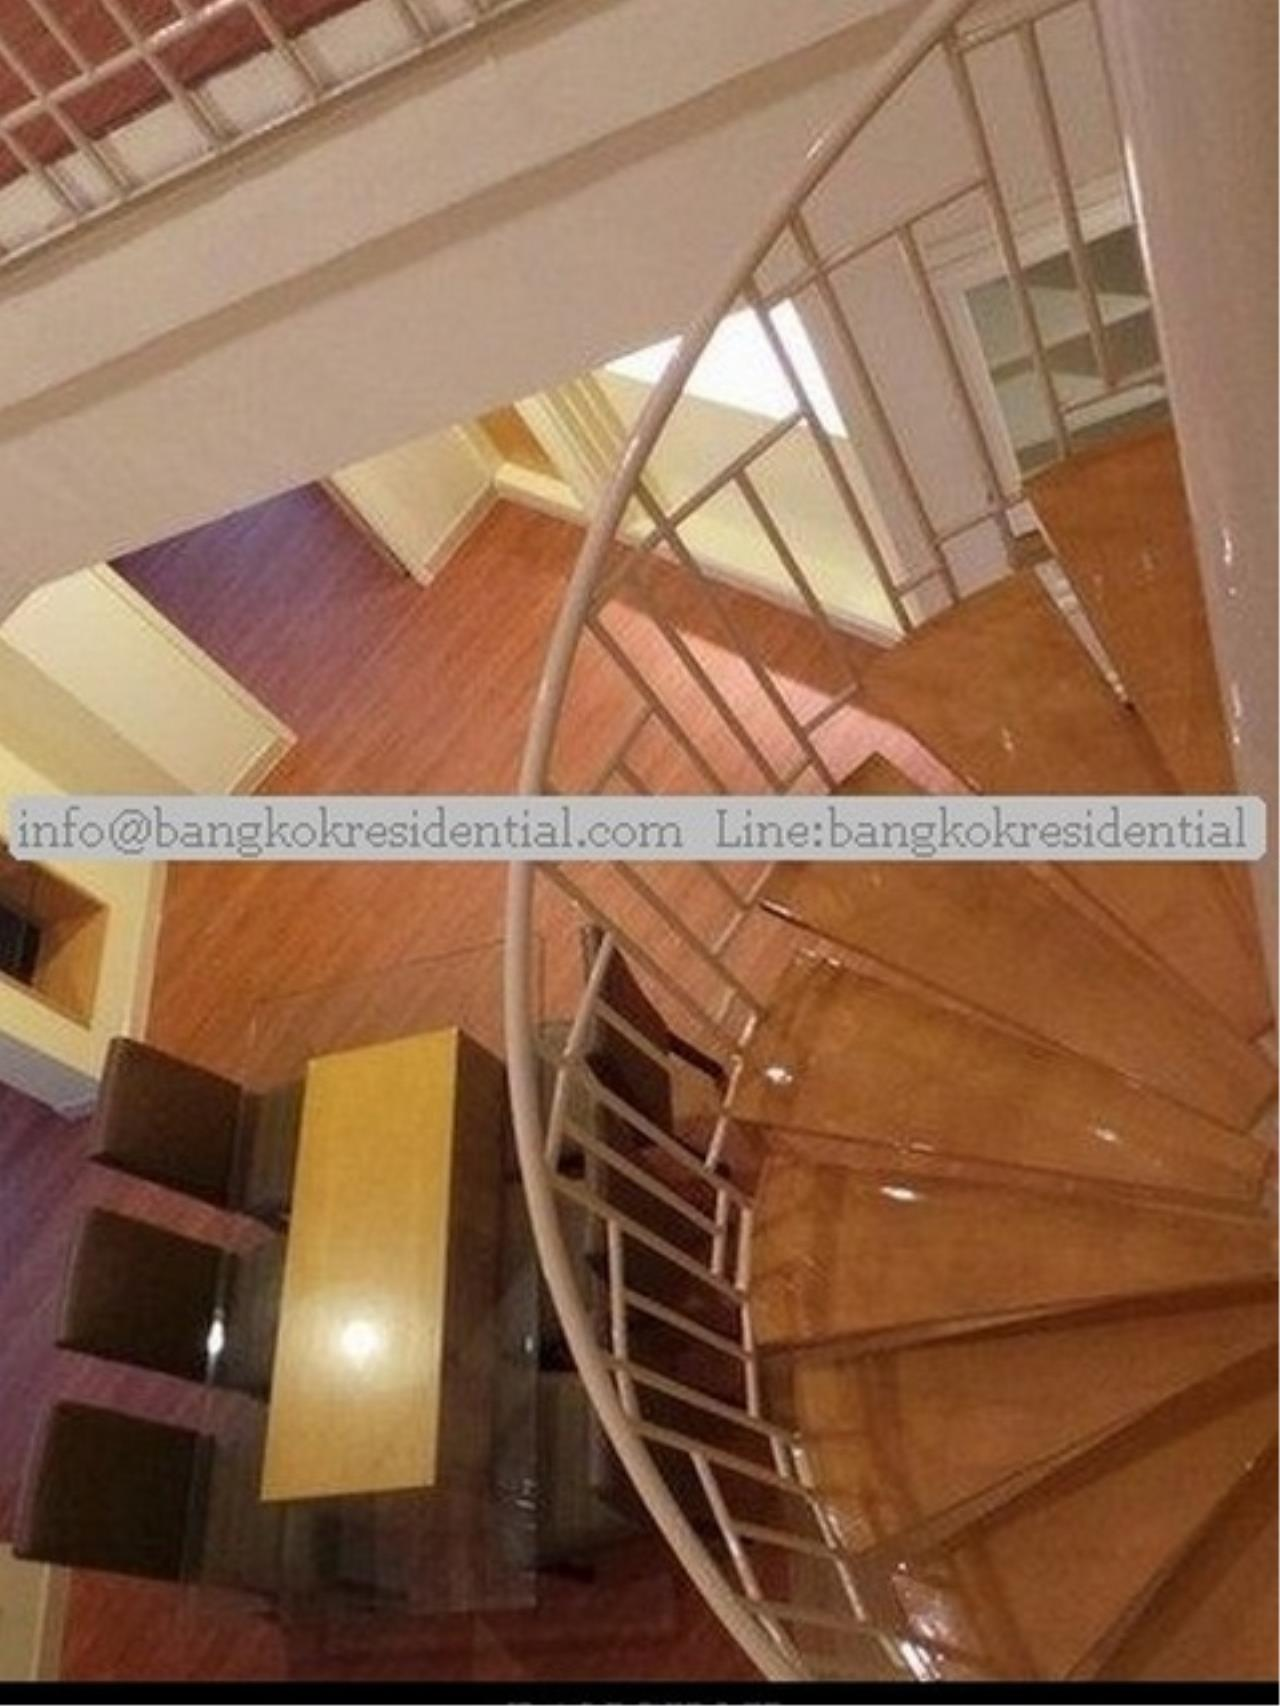 Bangkok Residential Agency's 4BR Tai Ping Tower For Sale Or Rent (BR2994CD) 9